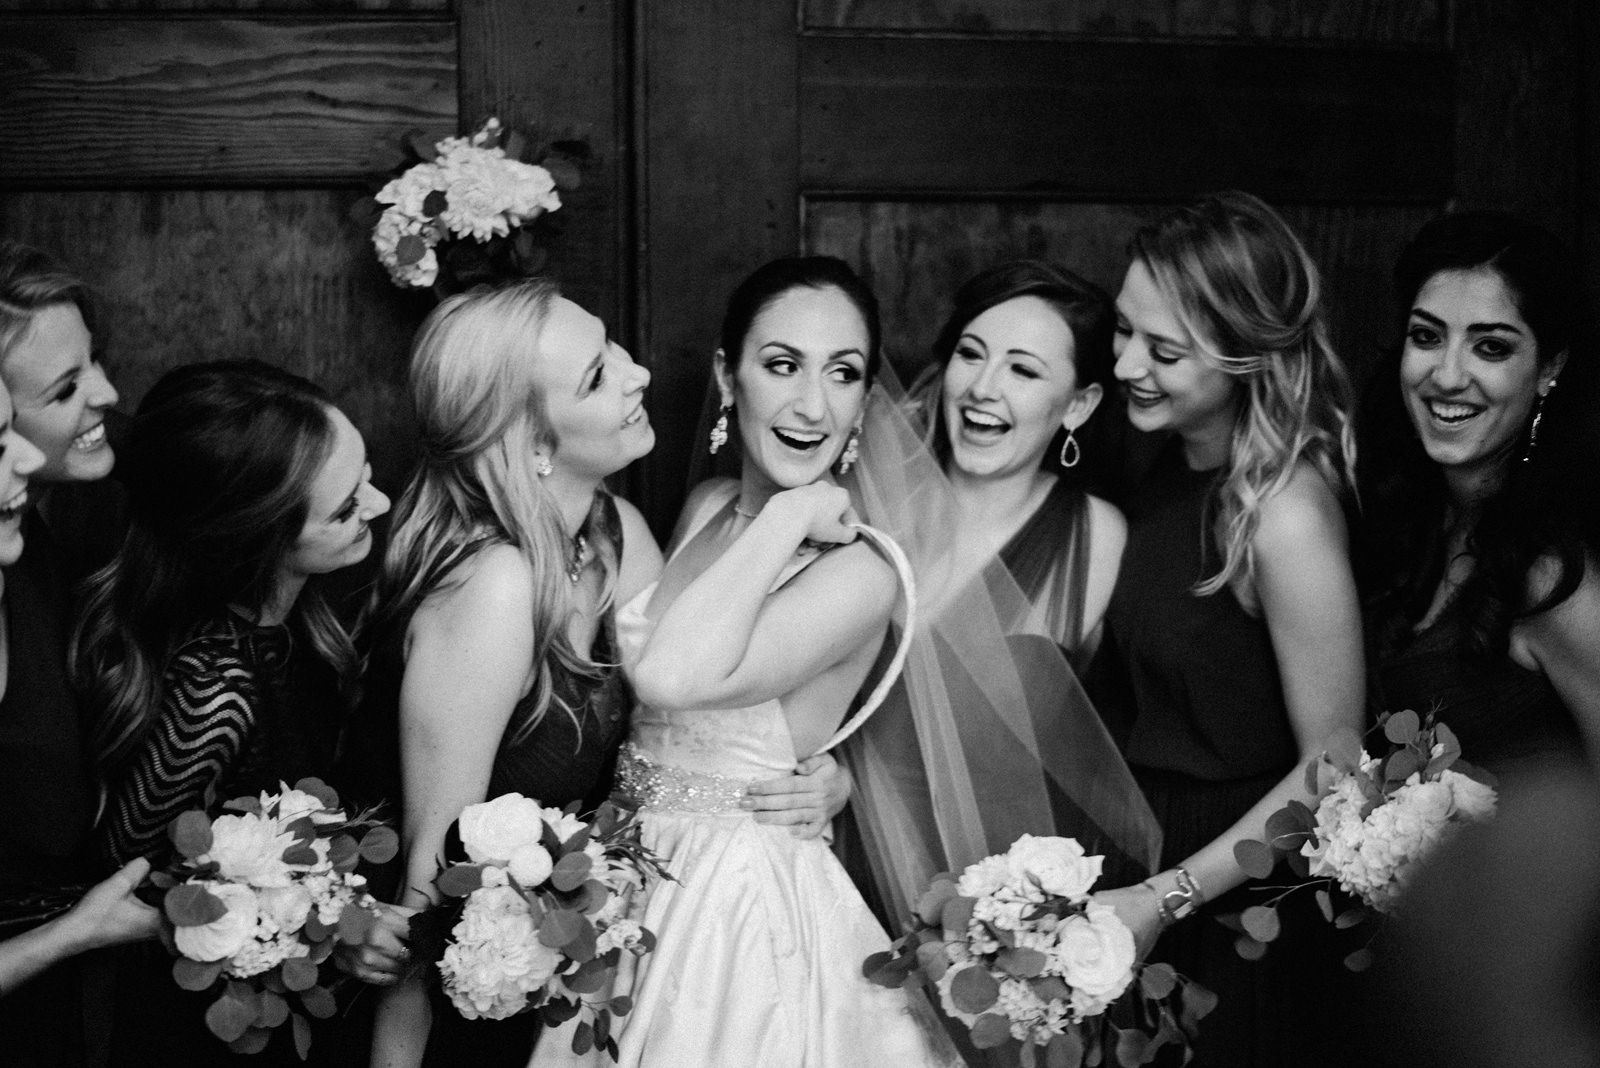 243-bride-and-bridesmaids-laughing-at-sodo-park-by-best-seattle-film-photographer-ryan-flynn.jpg